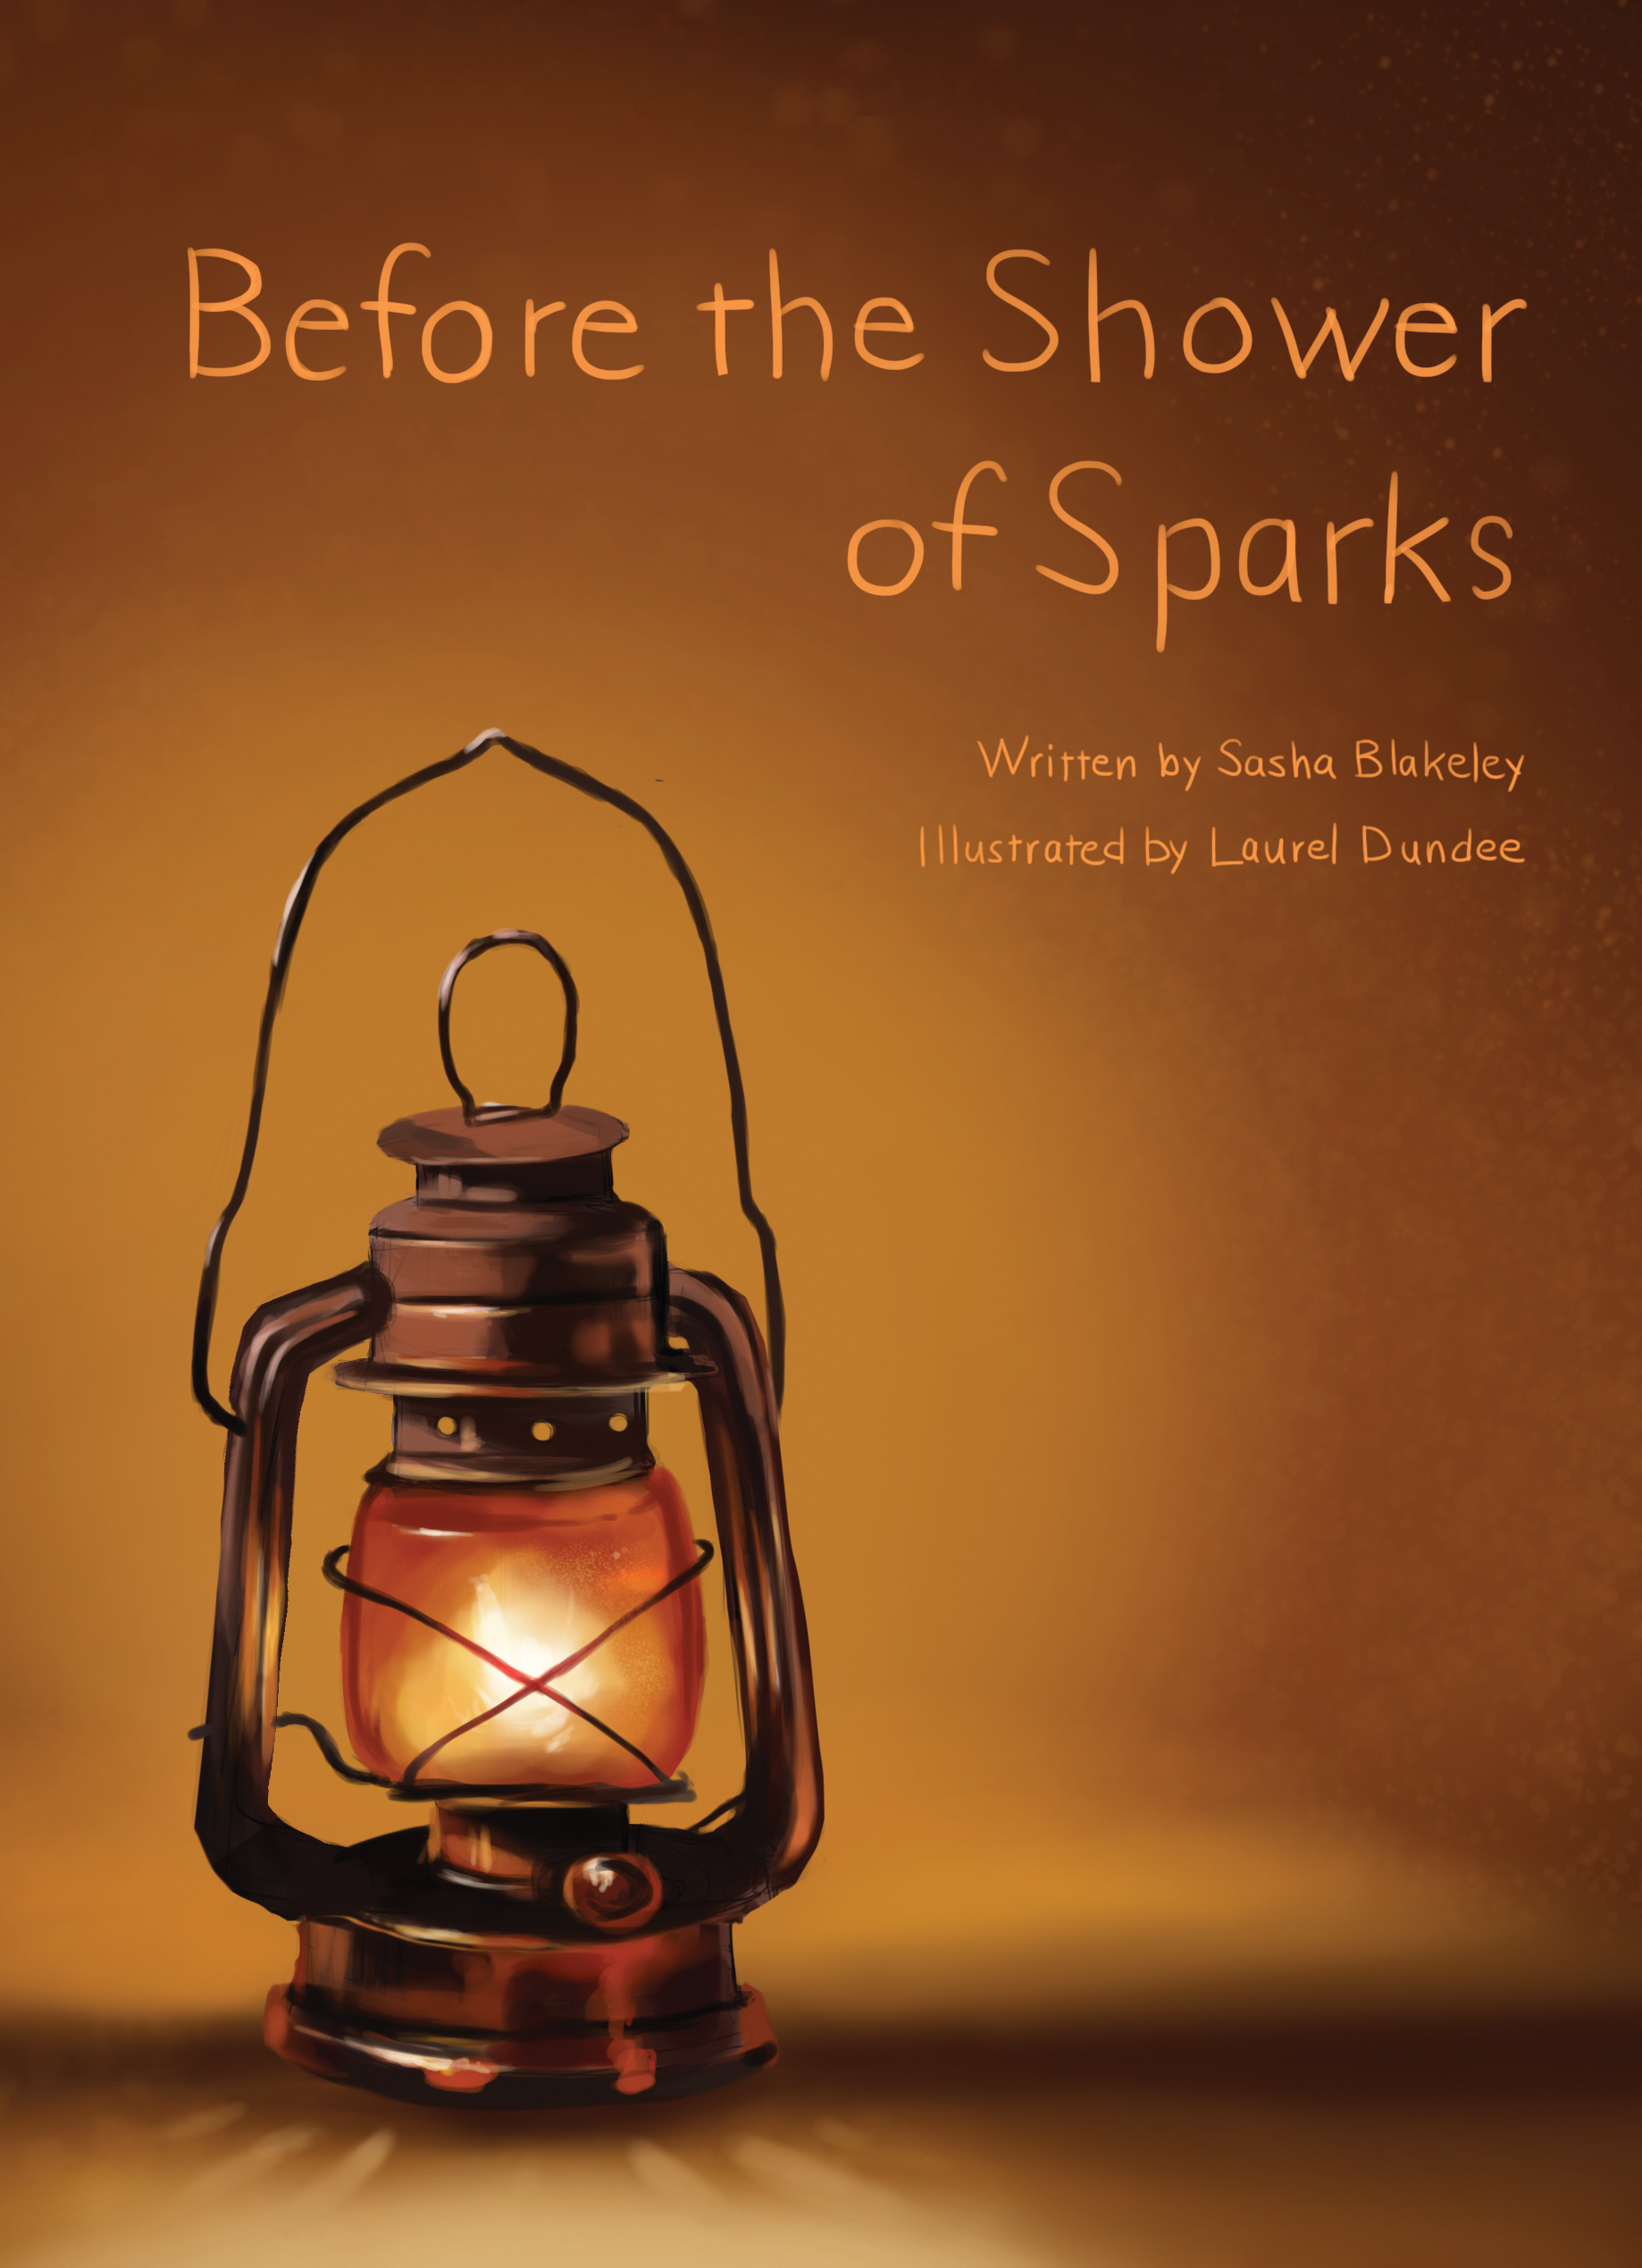 Before the Shower of Sparks